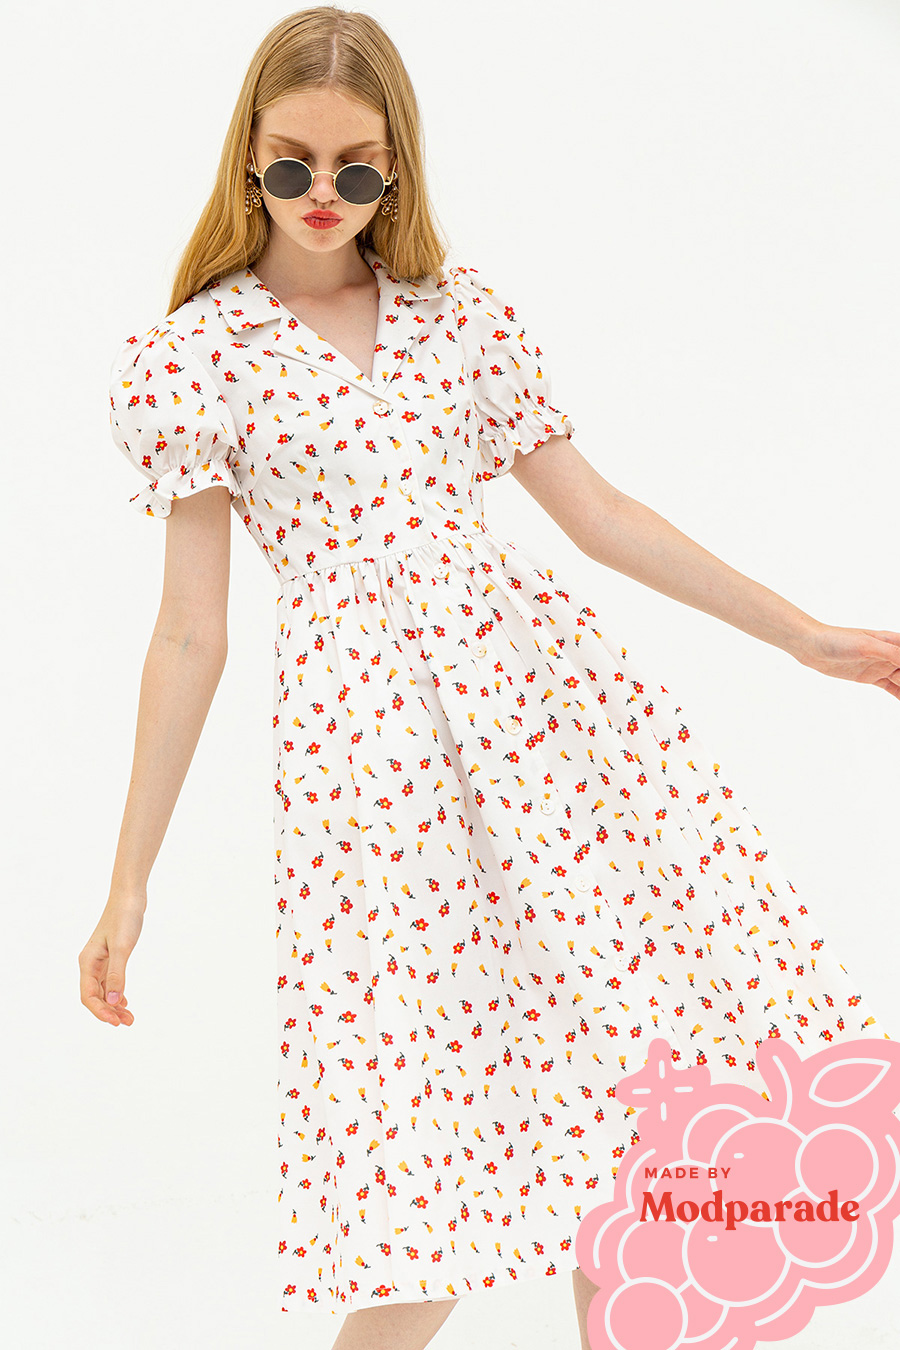 *RESTOCKED* MAGDALENE DRESS - POPPY [BY MODPARADE]